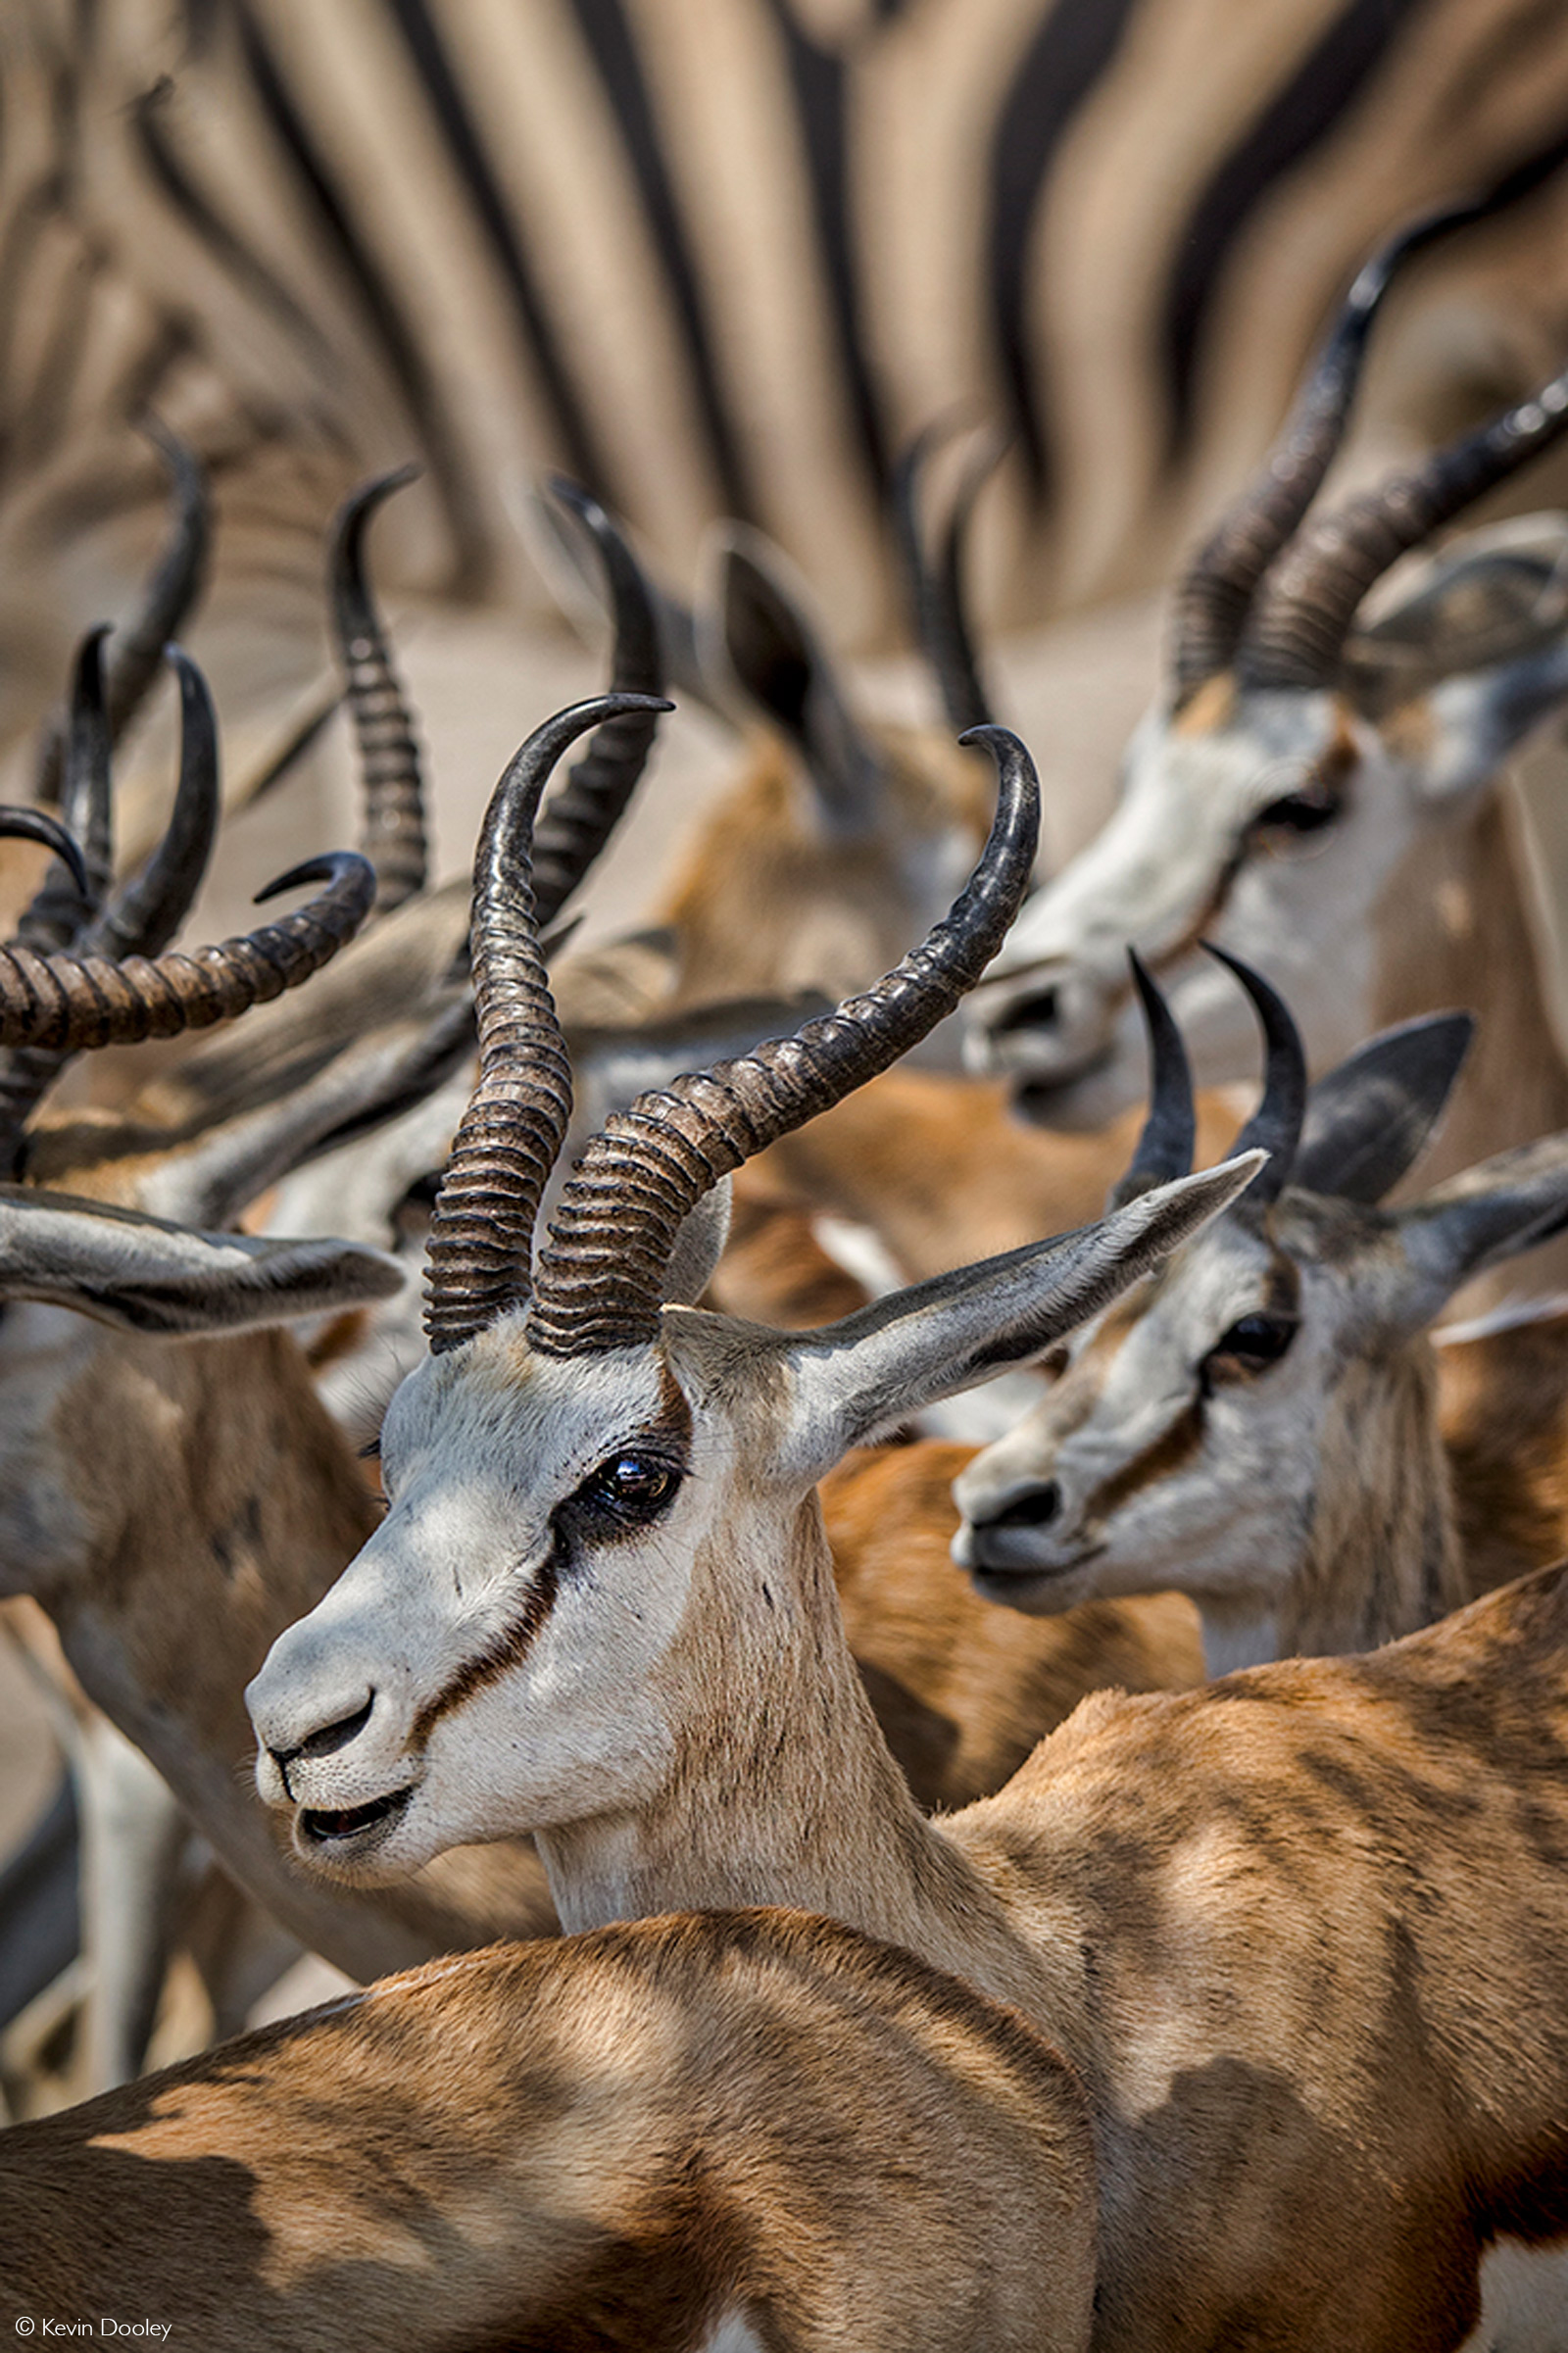 Springbok herd with zebra in the background. Etosha National Park, Namibia © Kevin Dooley